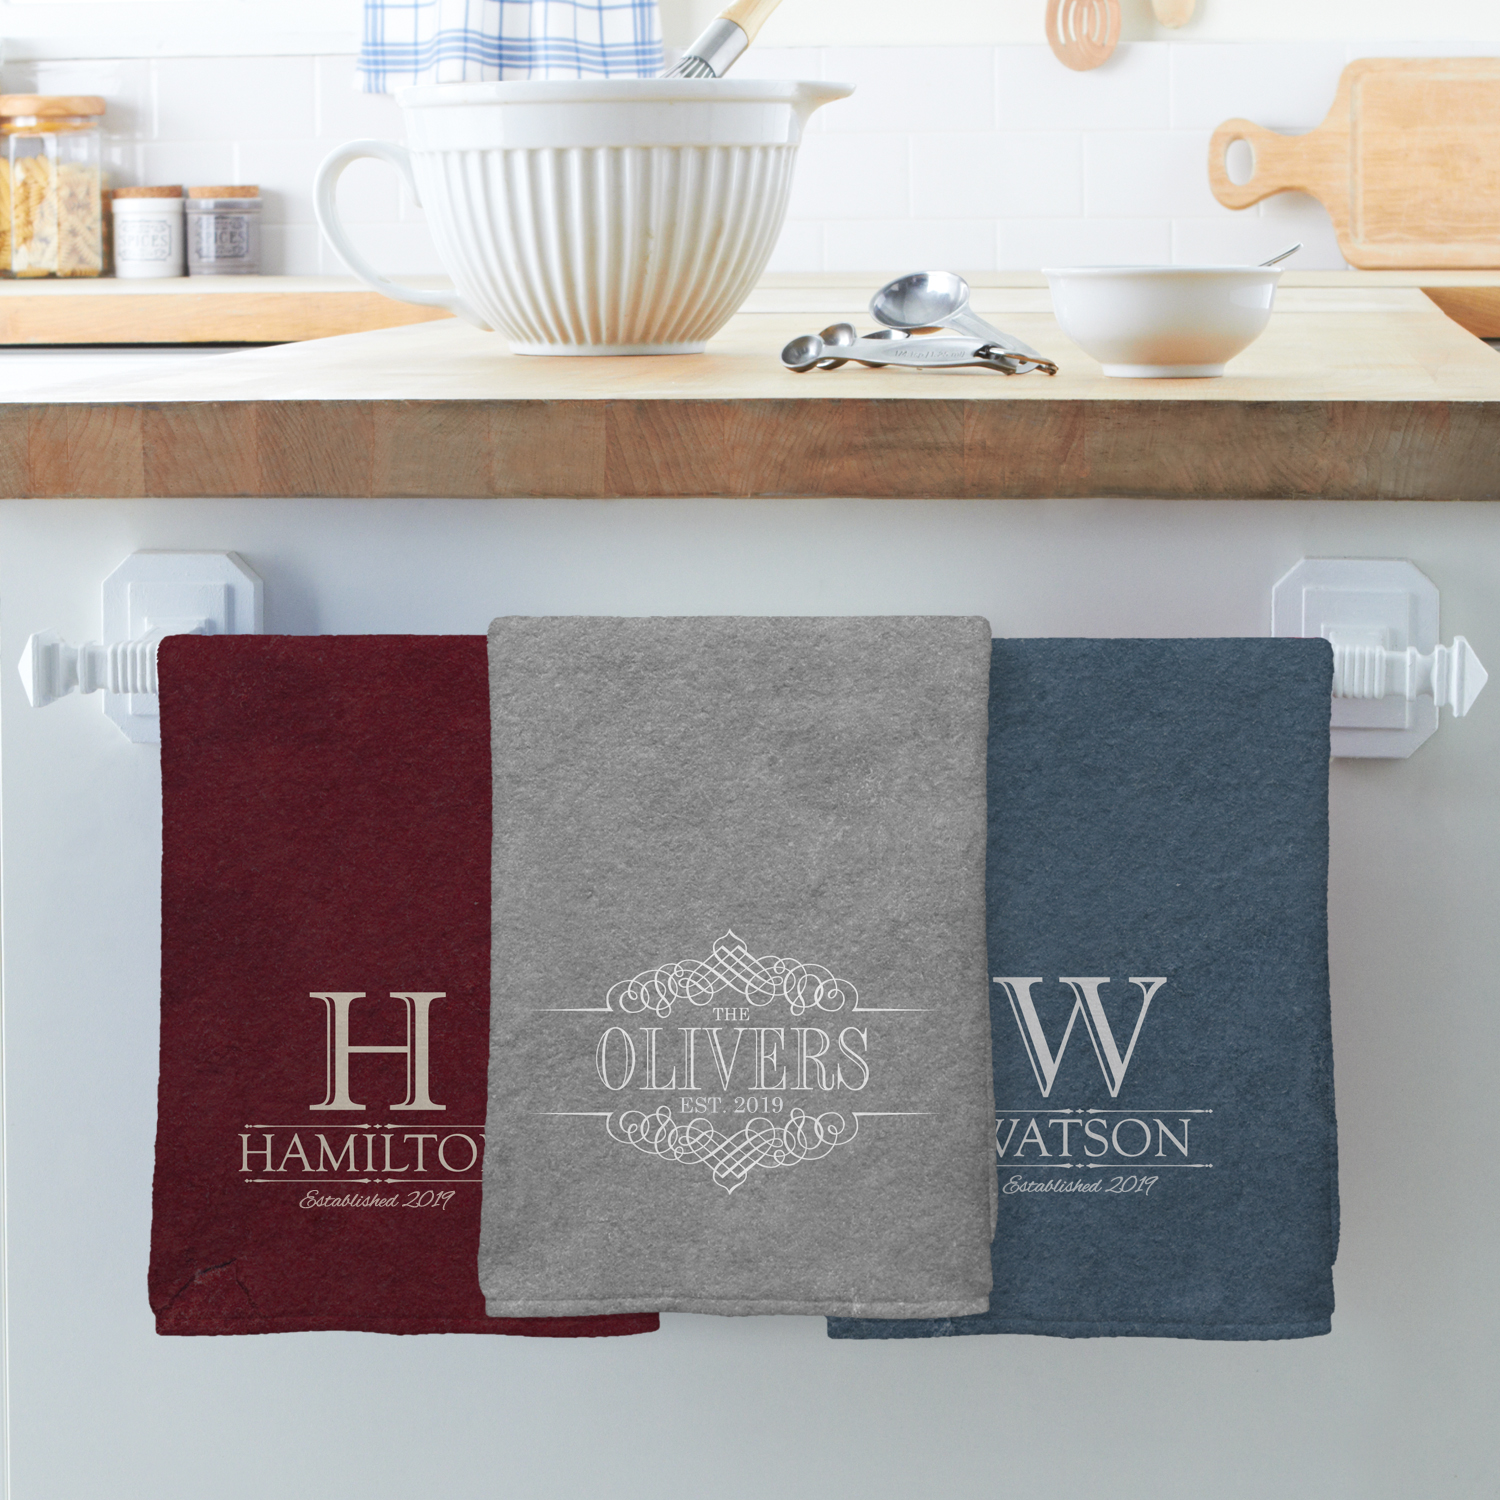 Personalized Decorative Name Kitchen Towel-Available in 3 Colors, Single or Set of 2